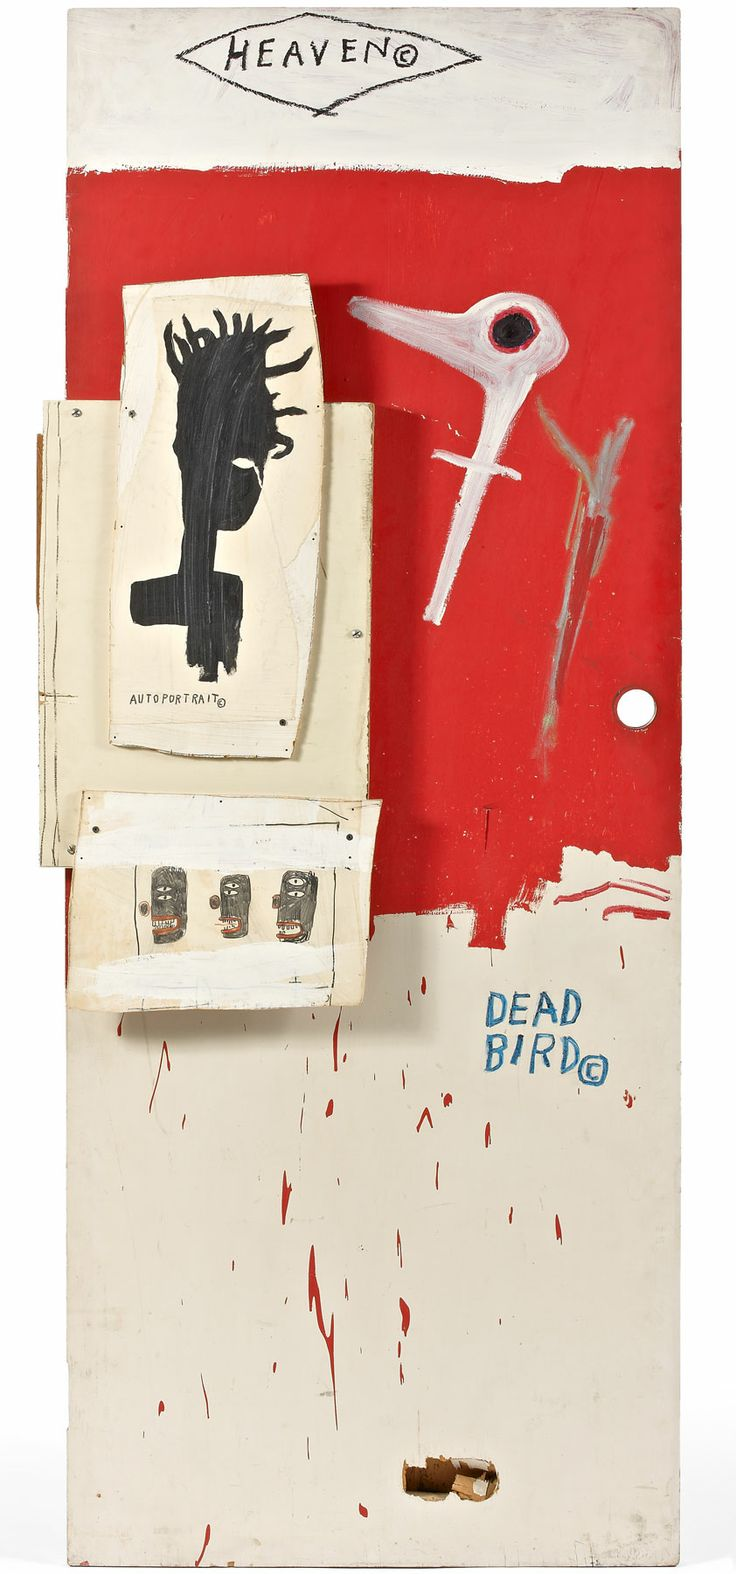 a biography of jean michel basquiat Artist jean-michel basquiat was born in brooklyn, new york, on december 22, 1960 with a haitian-american father and a puerto rican mother, basquiat's diverse cultural heritage was one of his many sources of inspiration.